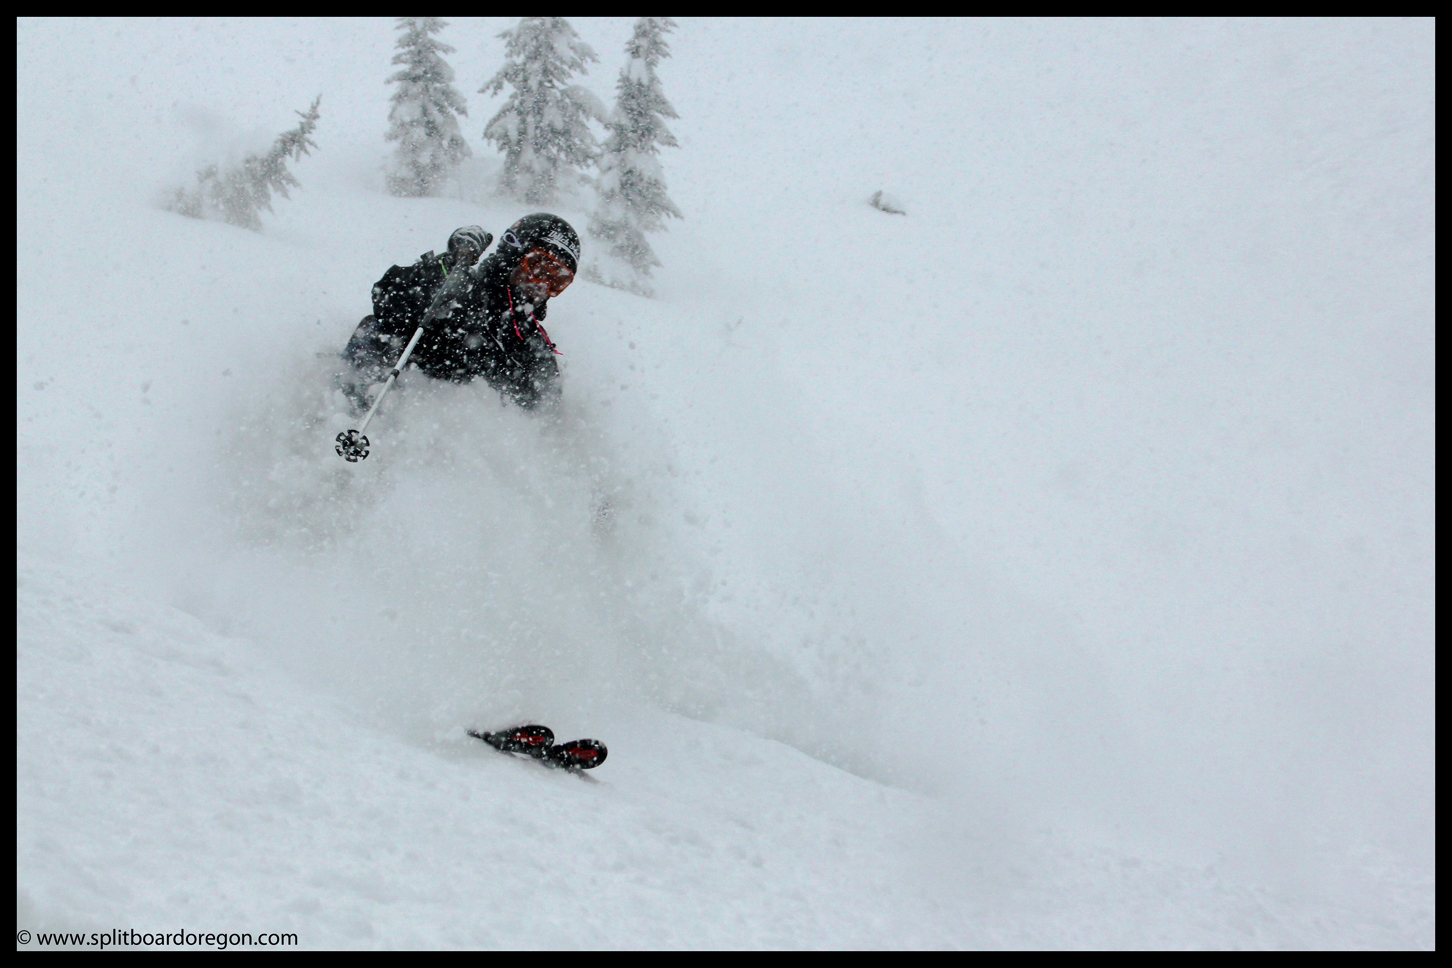 Andy enjoying the deep pow